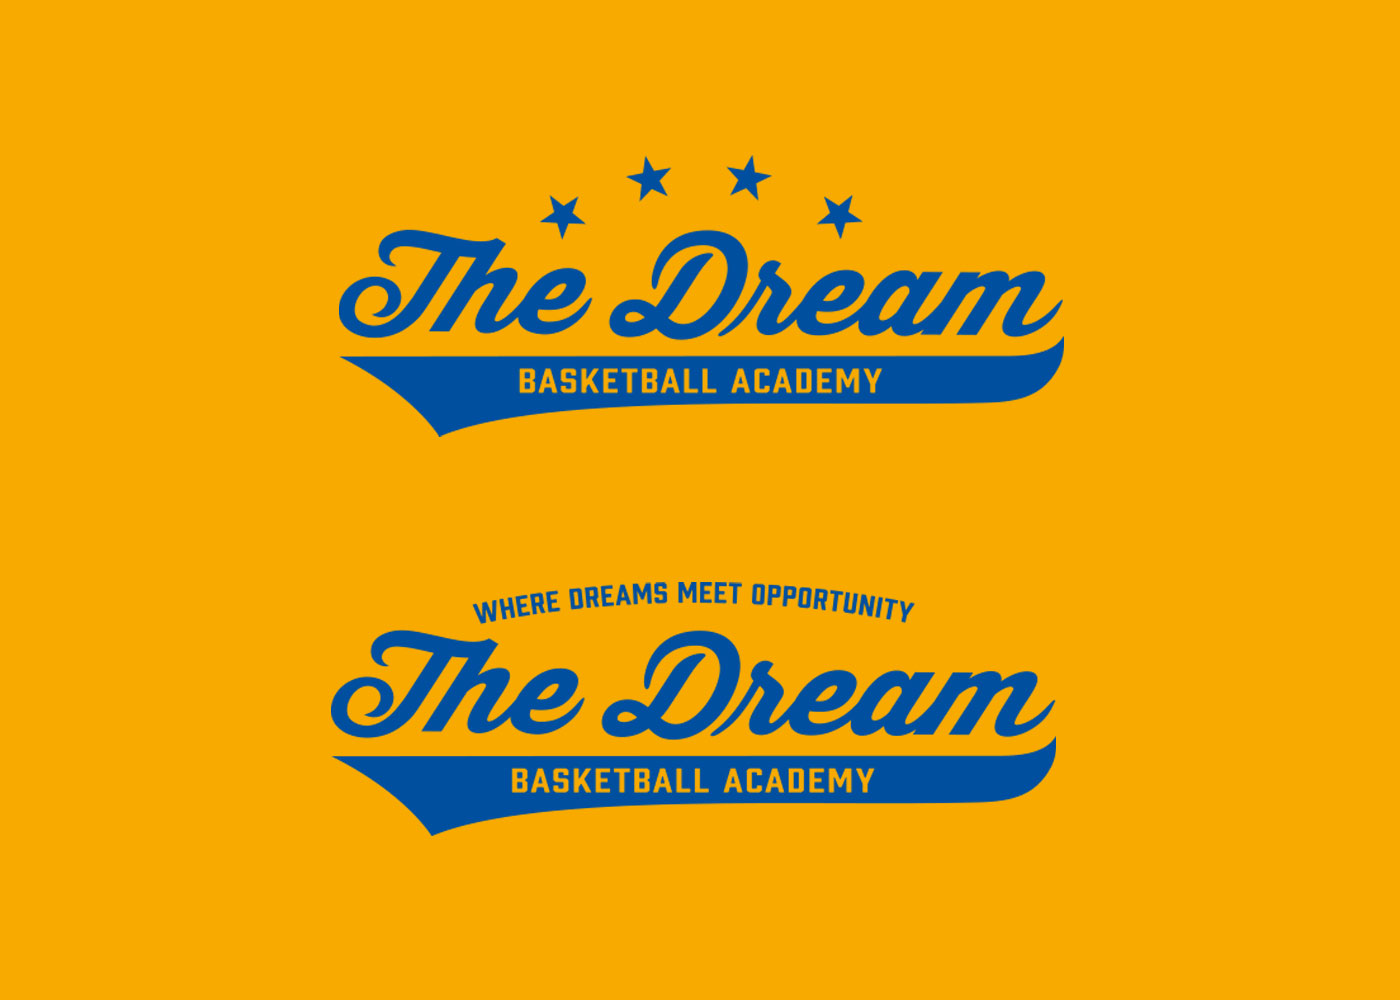 THE-DREAM-BASKETBALL-AC_WebPage_03